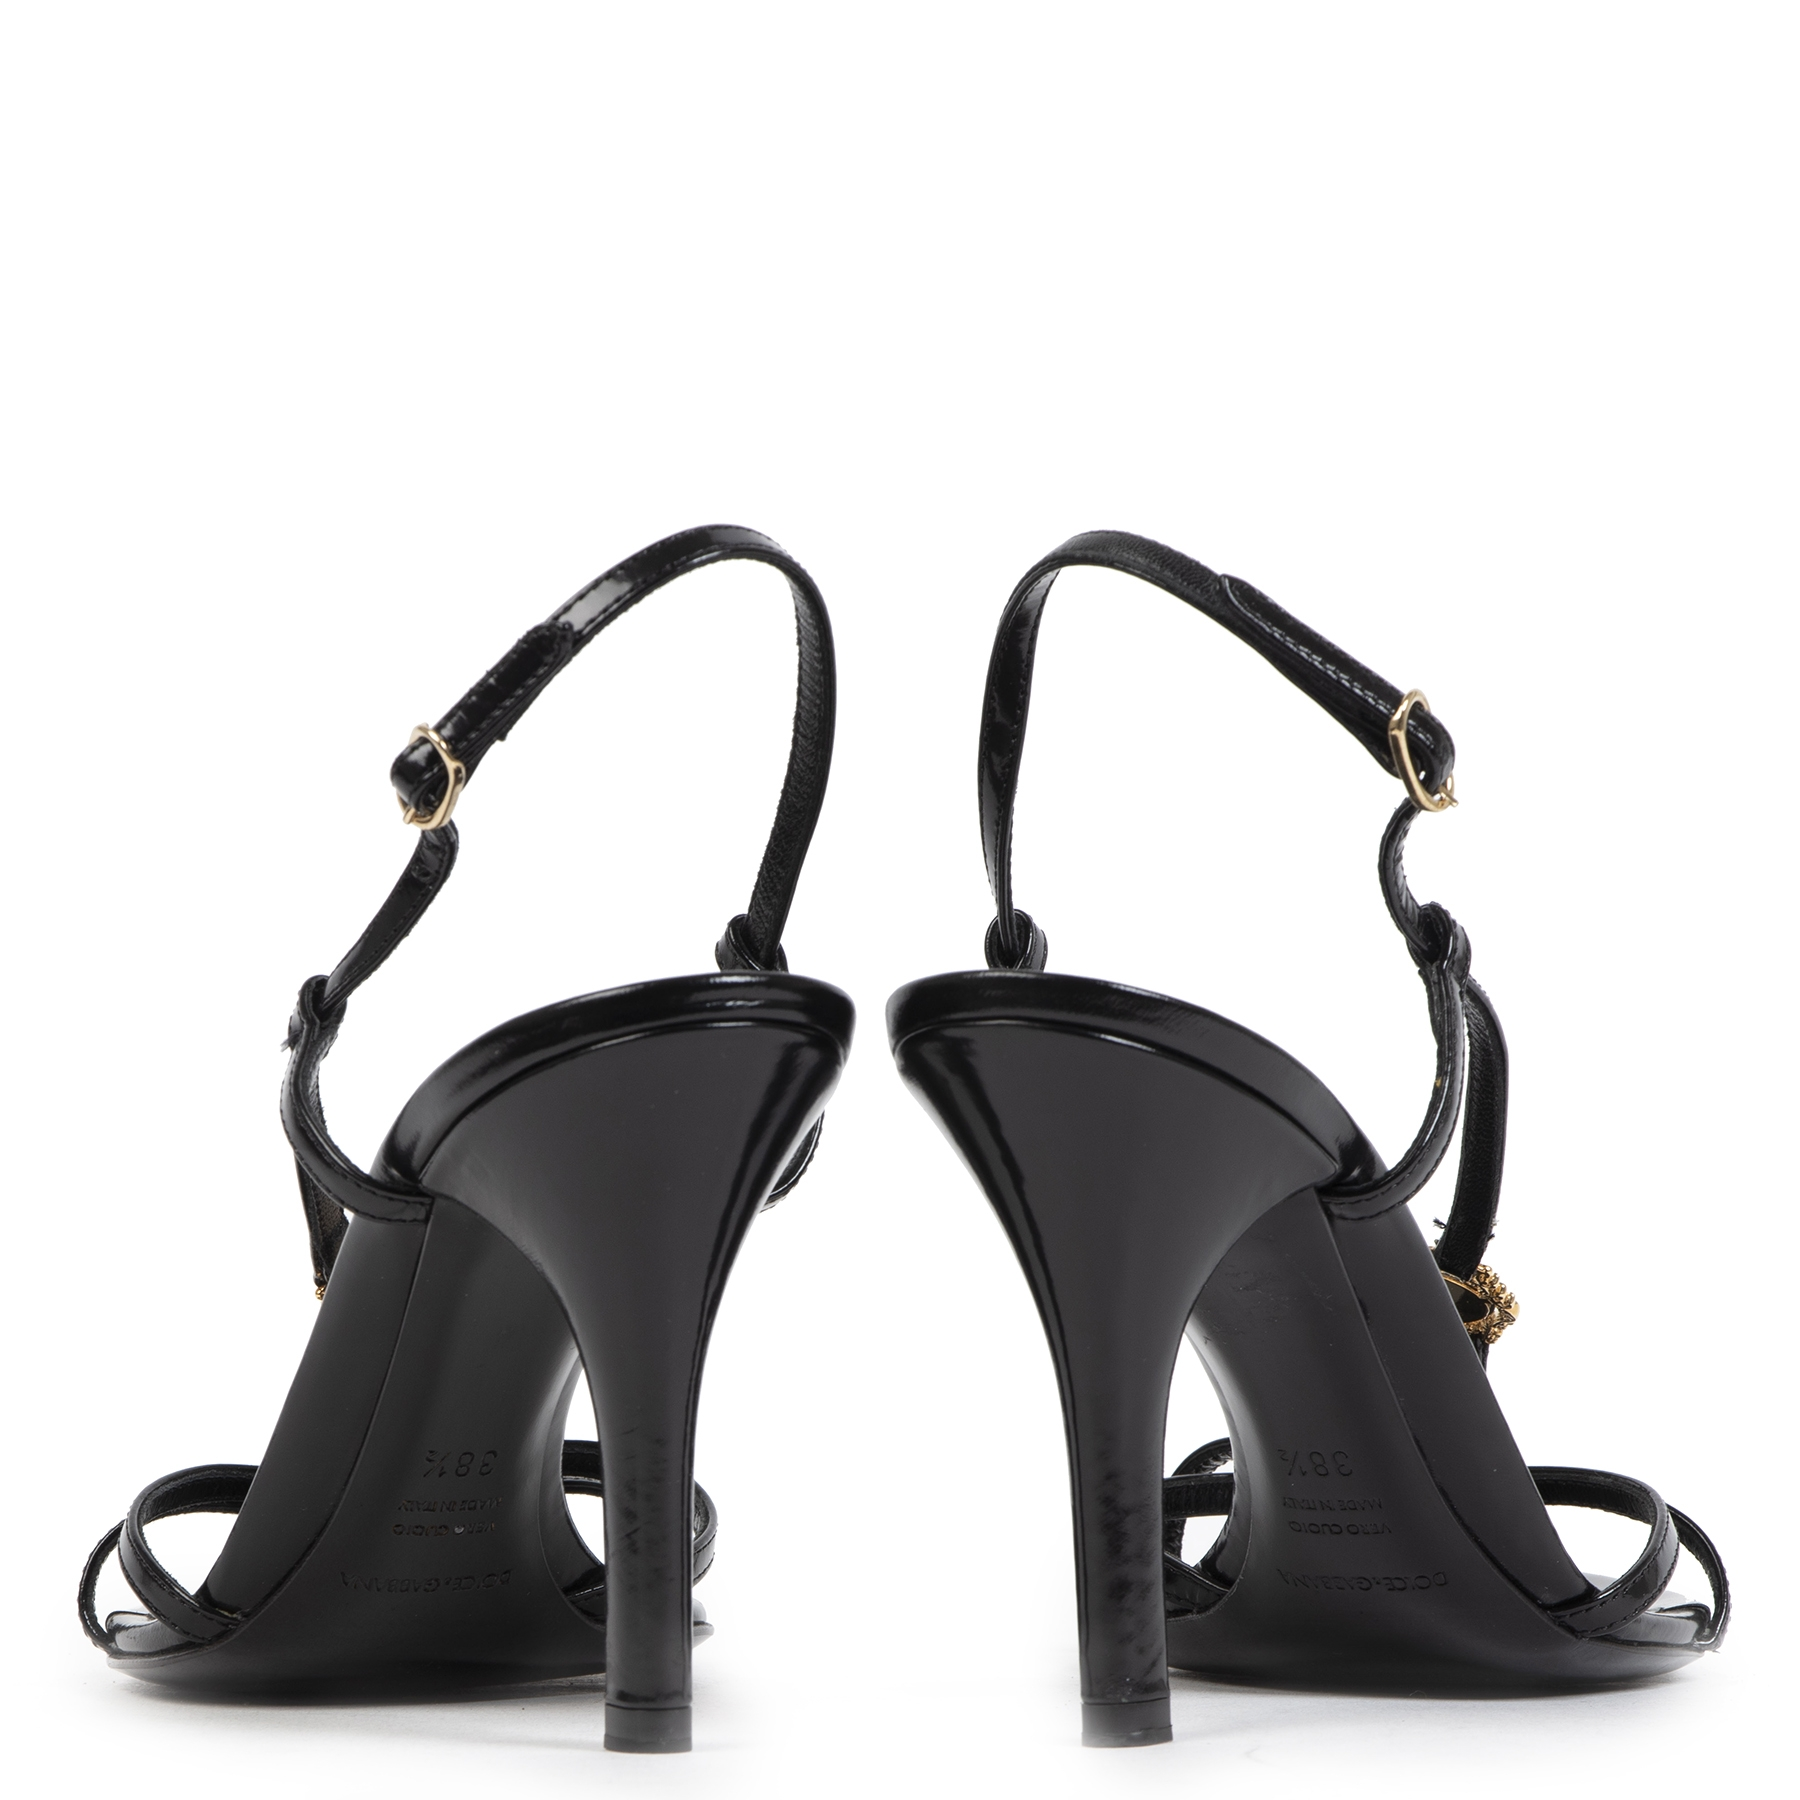 Authentieke tweedehands vintage Dolce & Gabbana Black Strappy Sandals - Size 38,5 koop online webshop LabelLOV